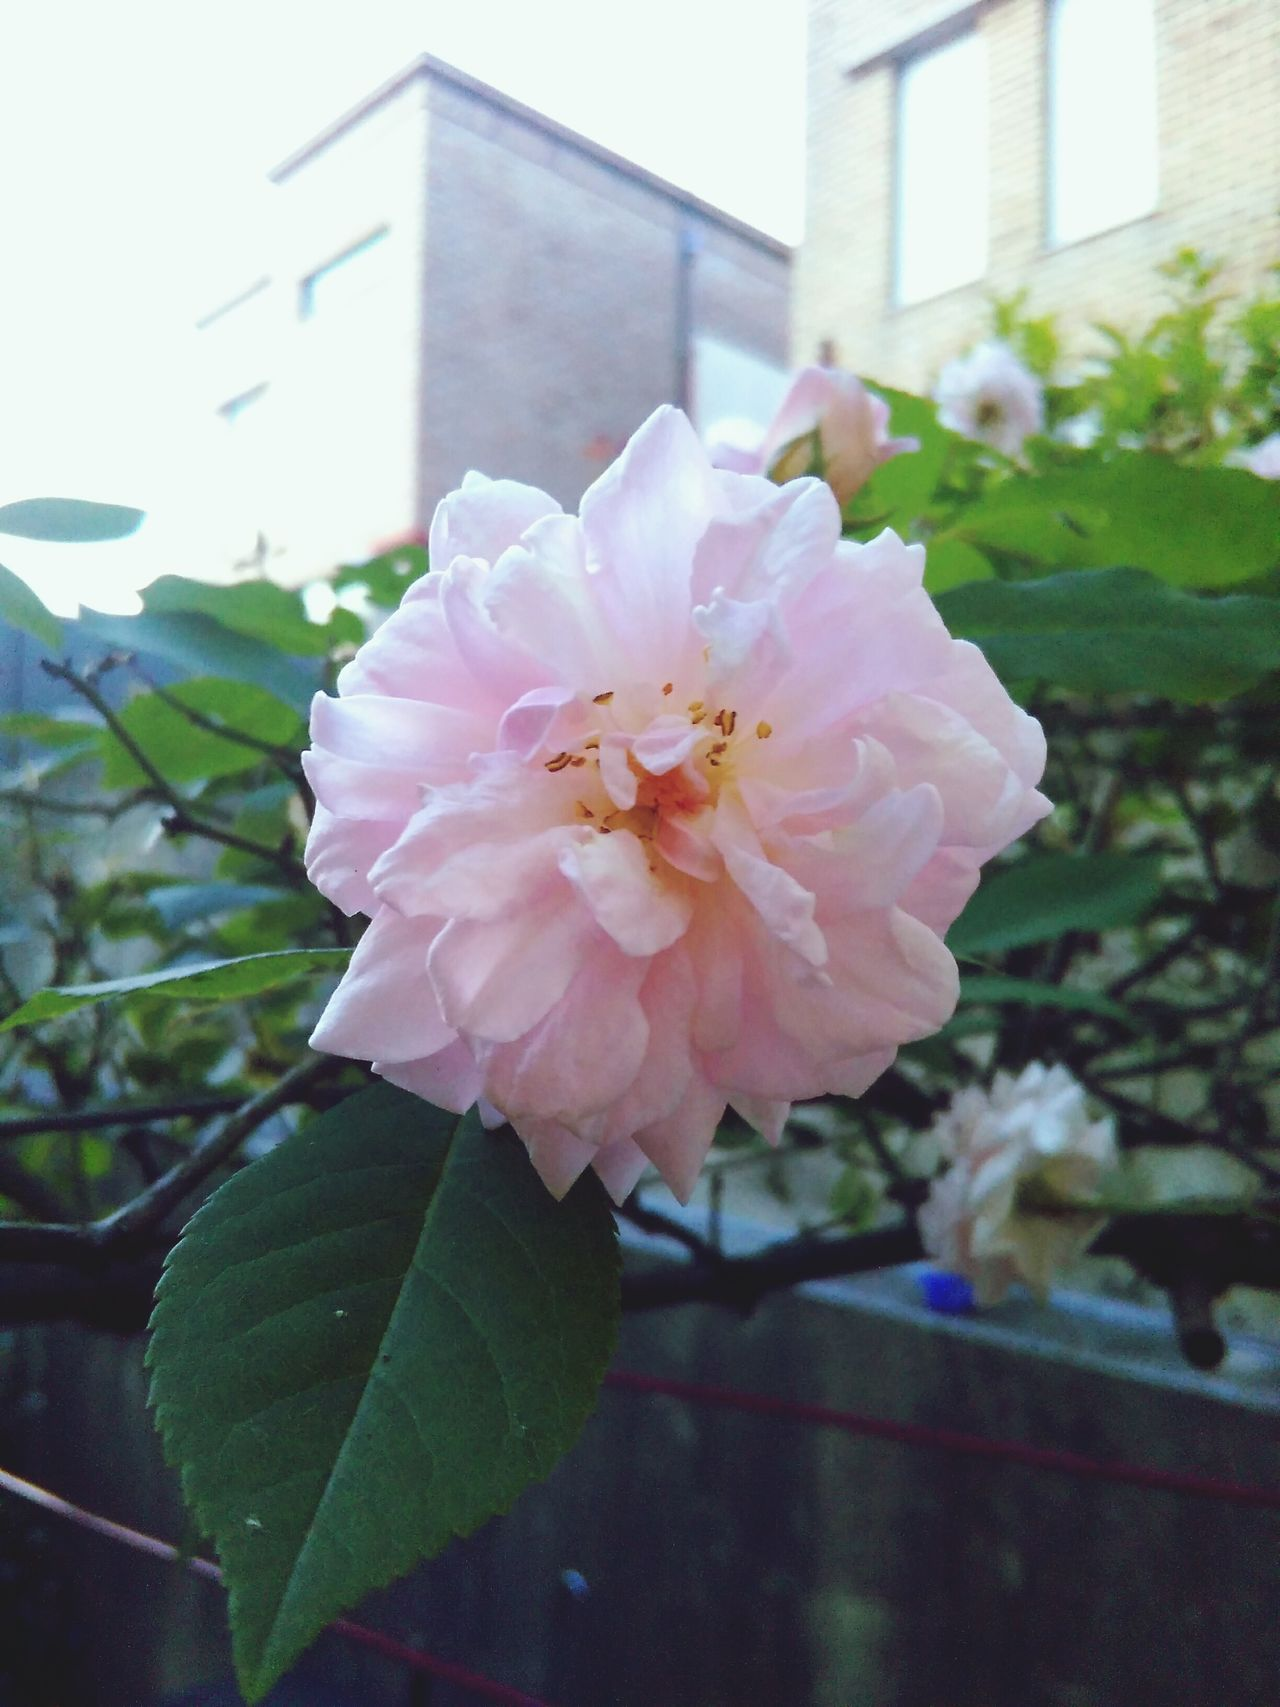 Garden Roses Check This Out Awsomenature Flowers Nature